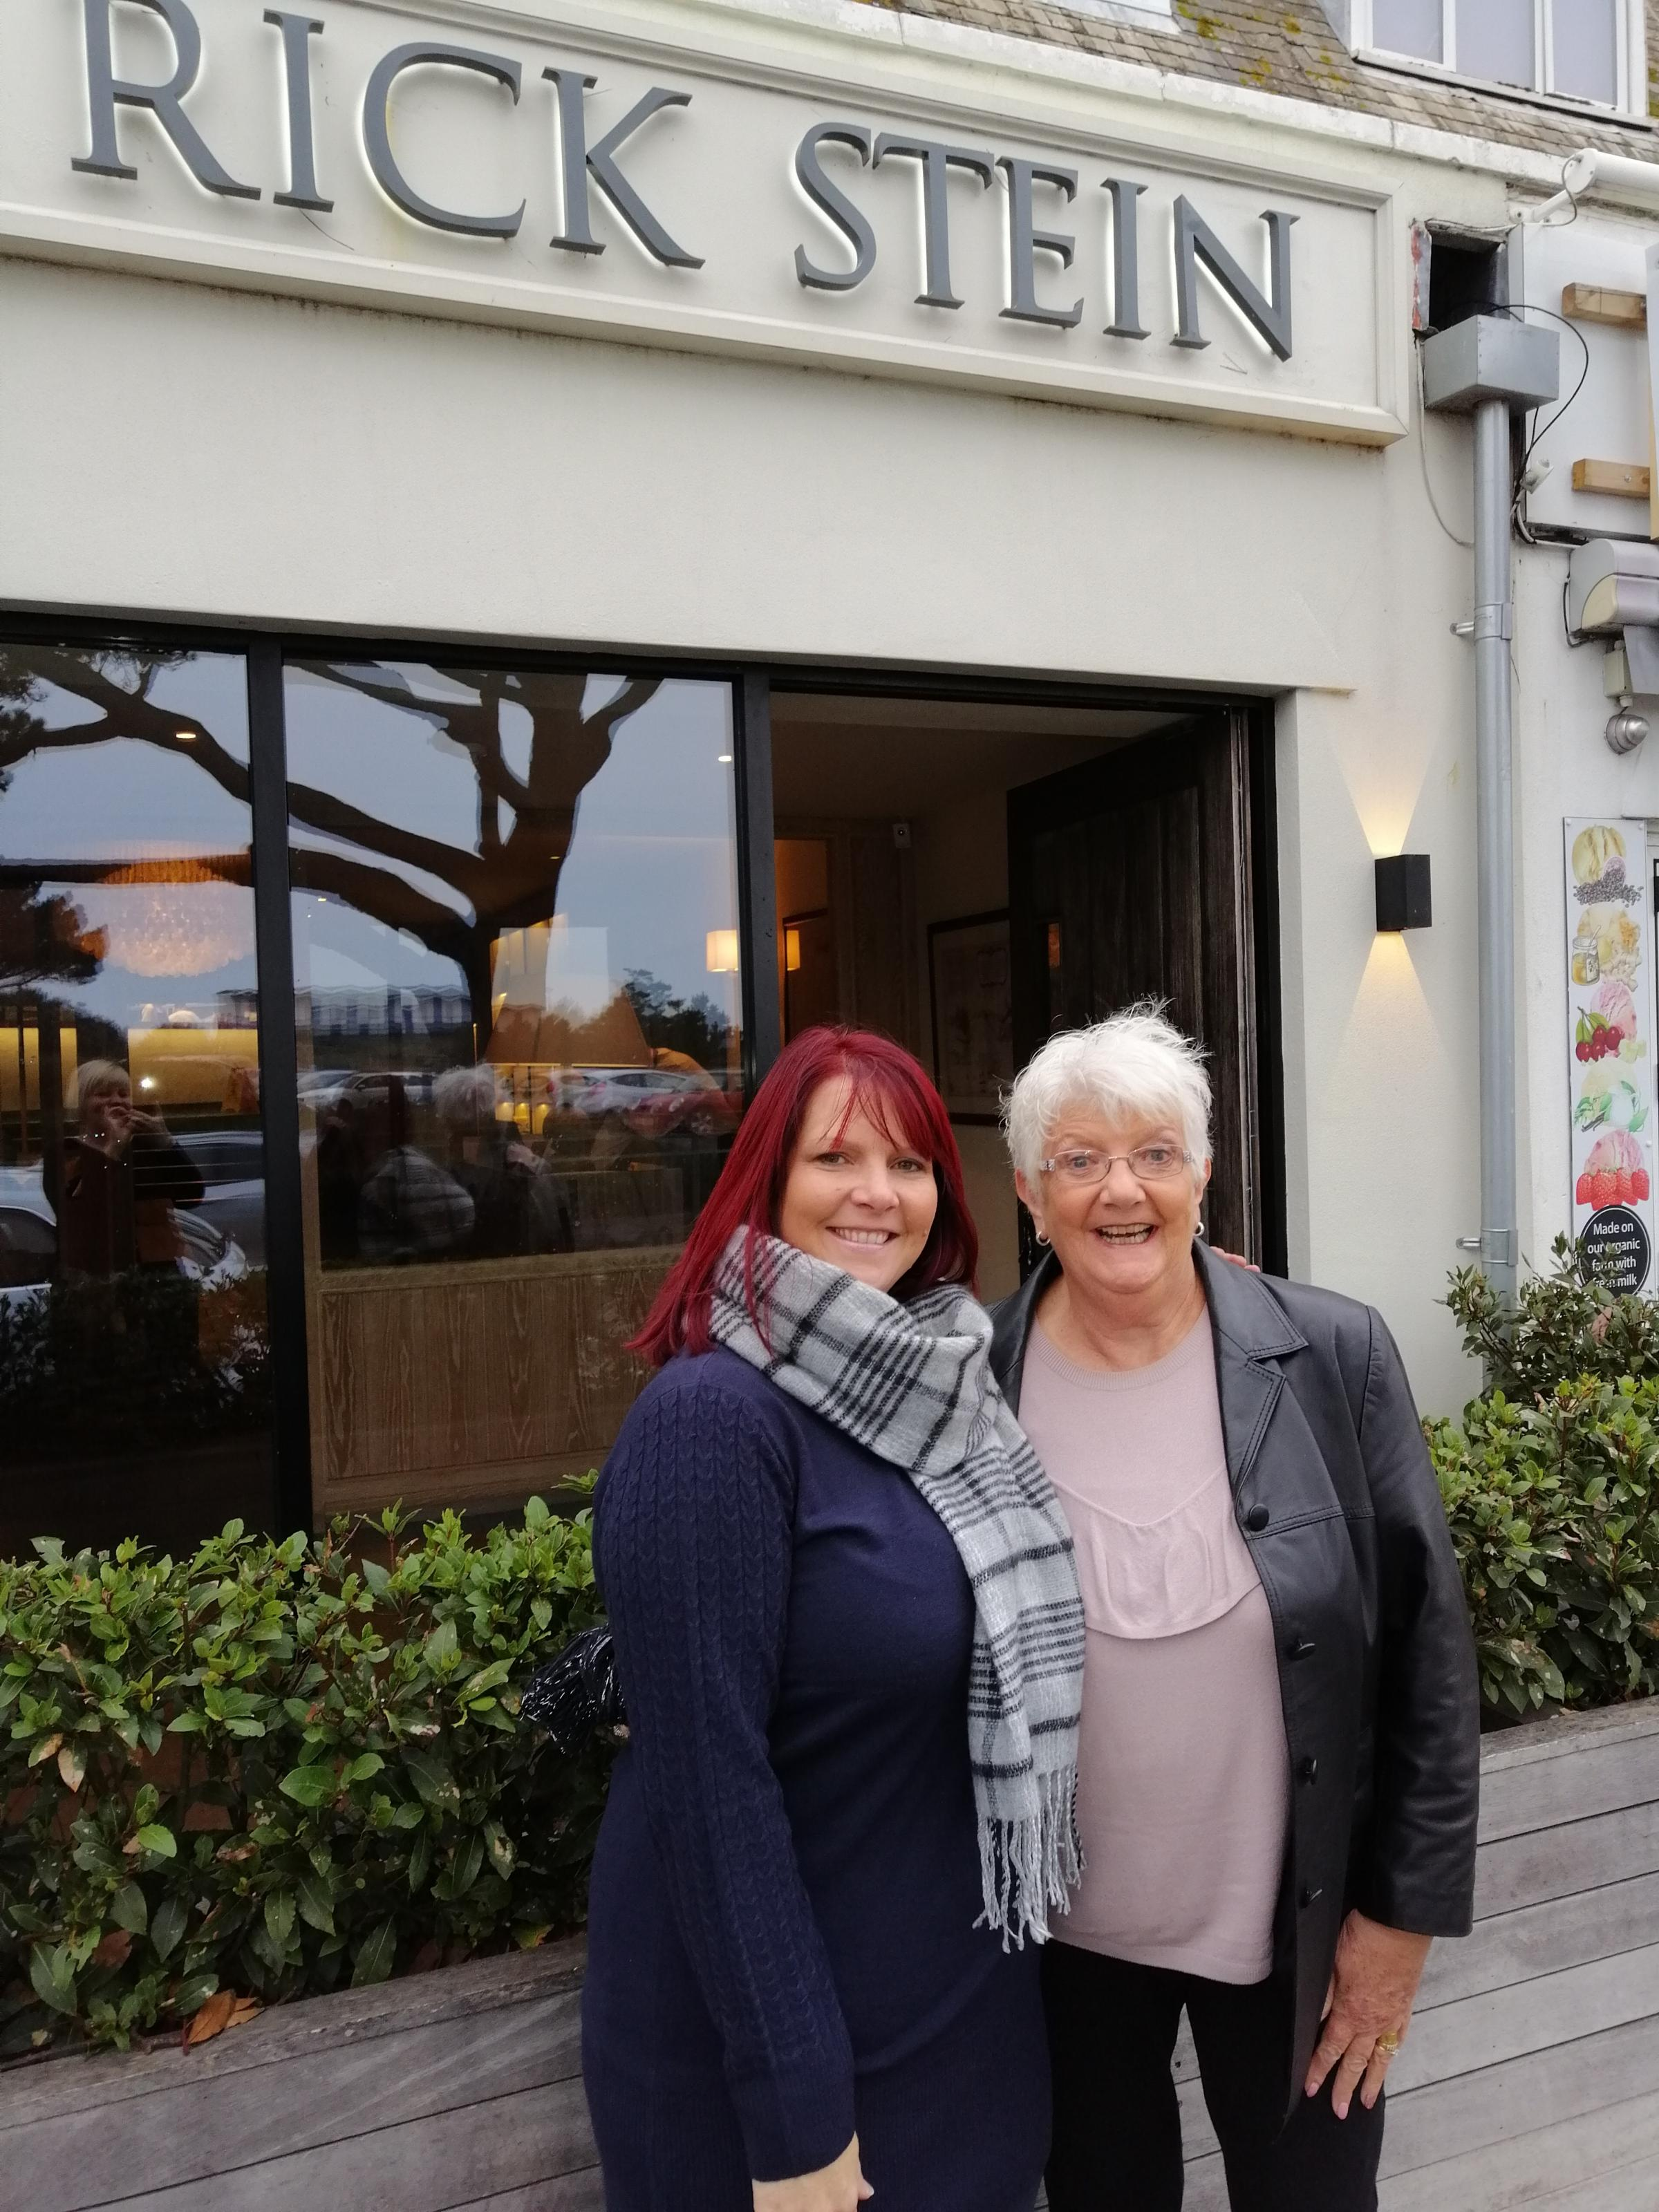 Forest Holme supporter Jo Crabb and her Mum, Rita, outside Rick Stein in Sandbanks